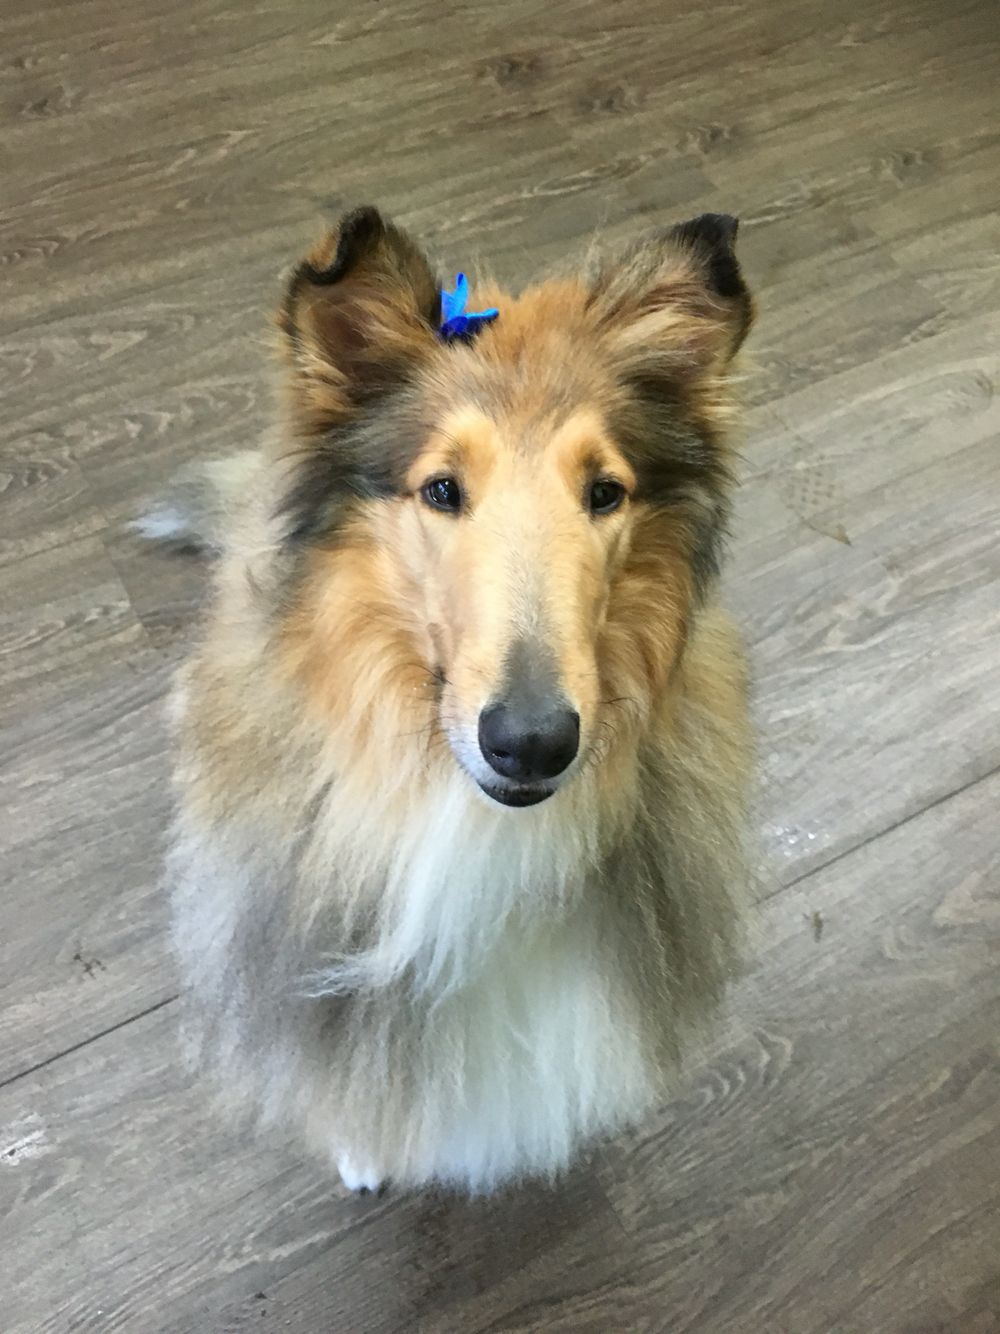 Sable Rough Collie Fresh From The Groomers With A Lovely Blue Bow